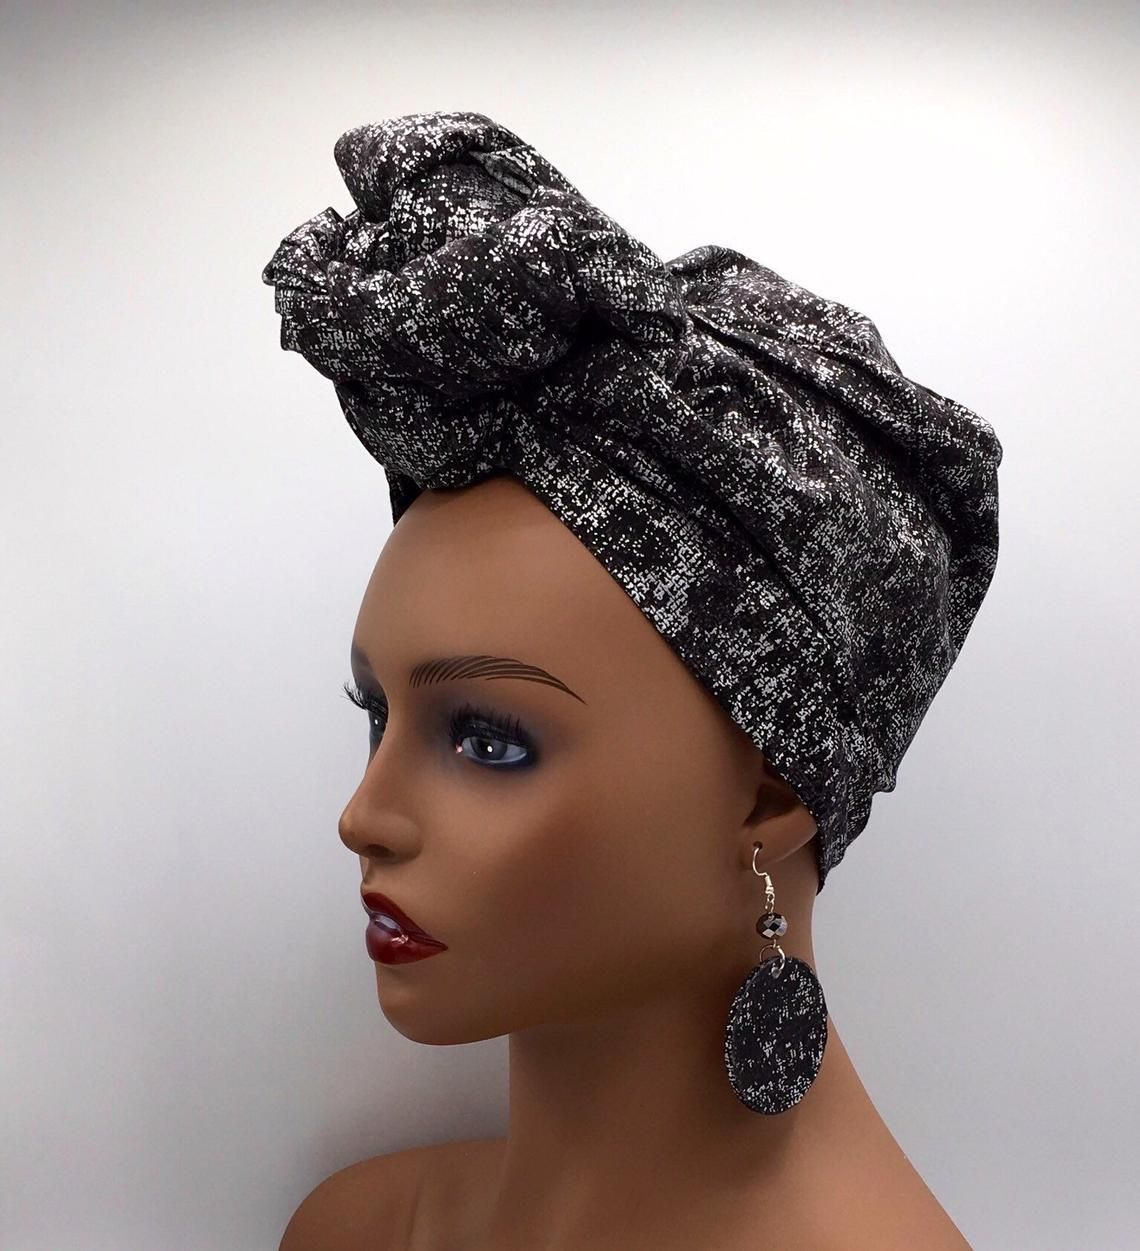 Black and Silver Head Wrap African Head Wrap African Scarf